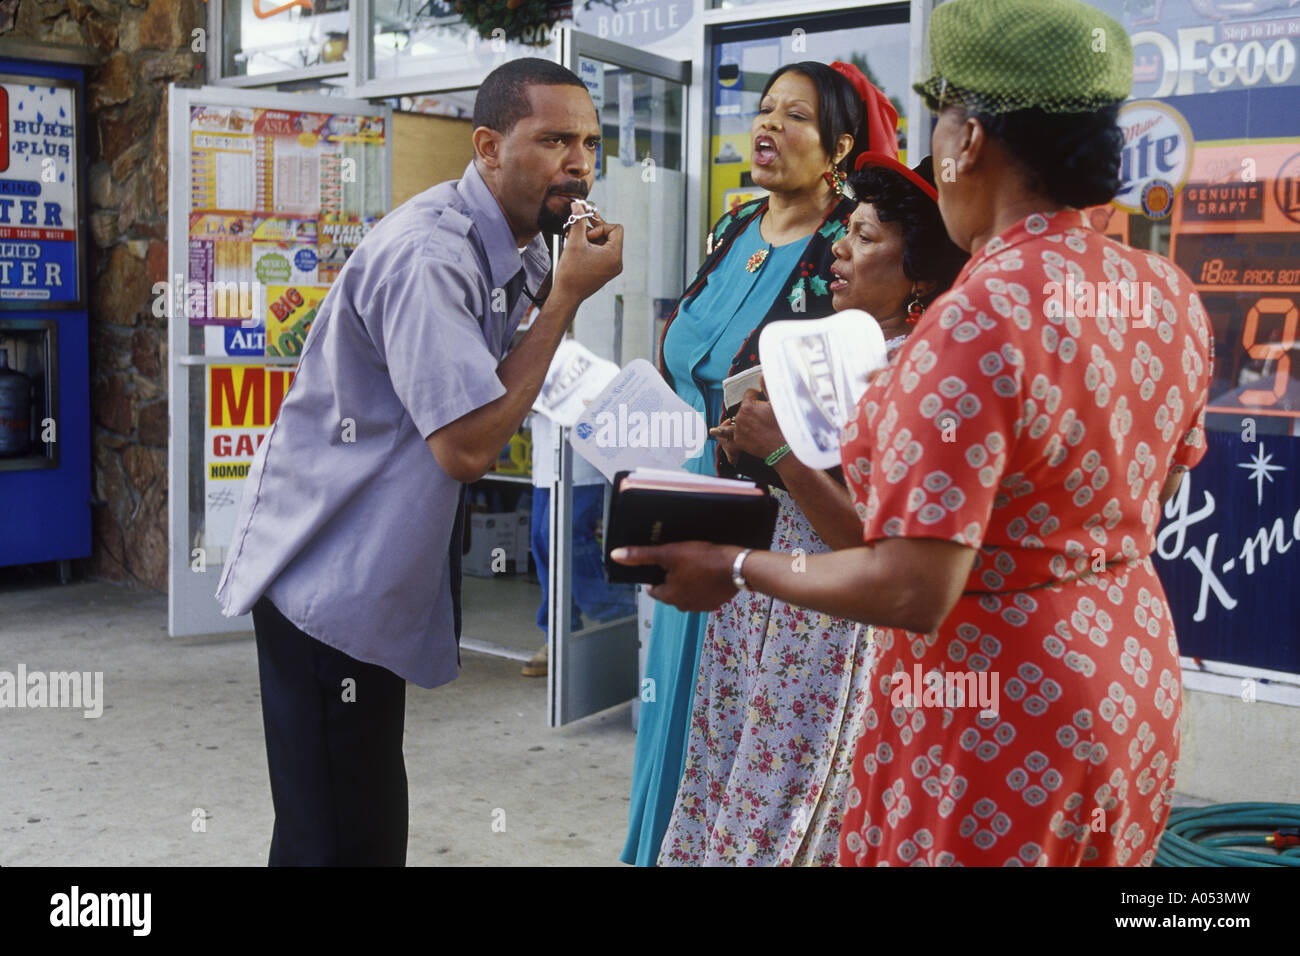 FRIDAY AFTER NEXT 2002 New Line film with Mike Epps - Stock Image